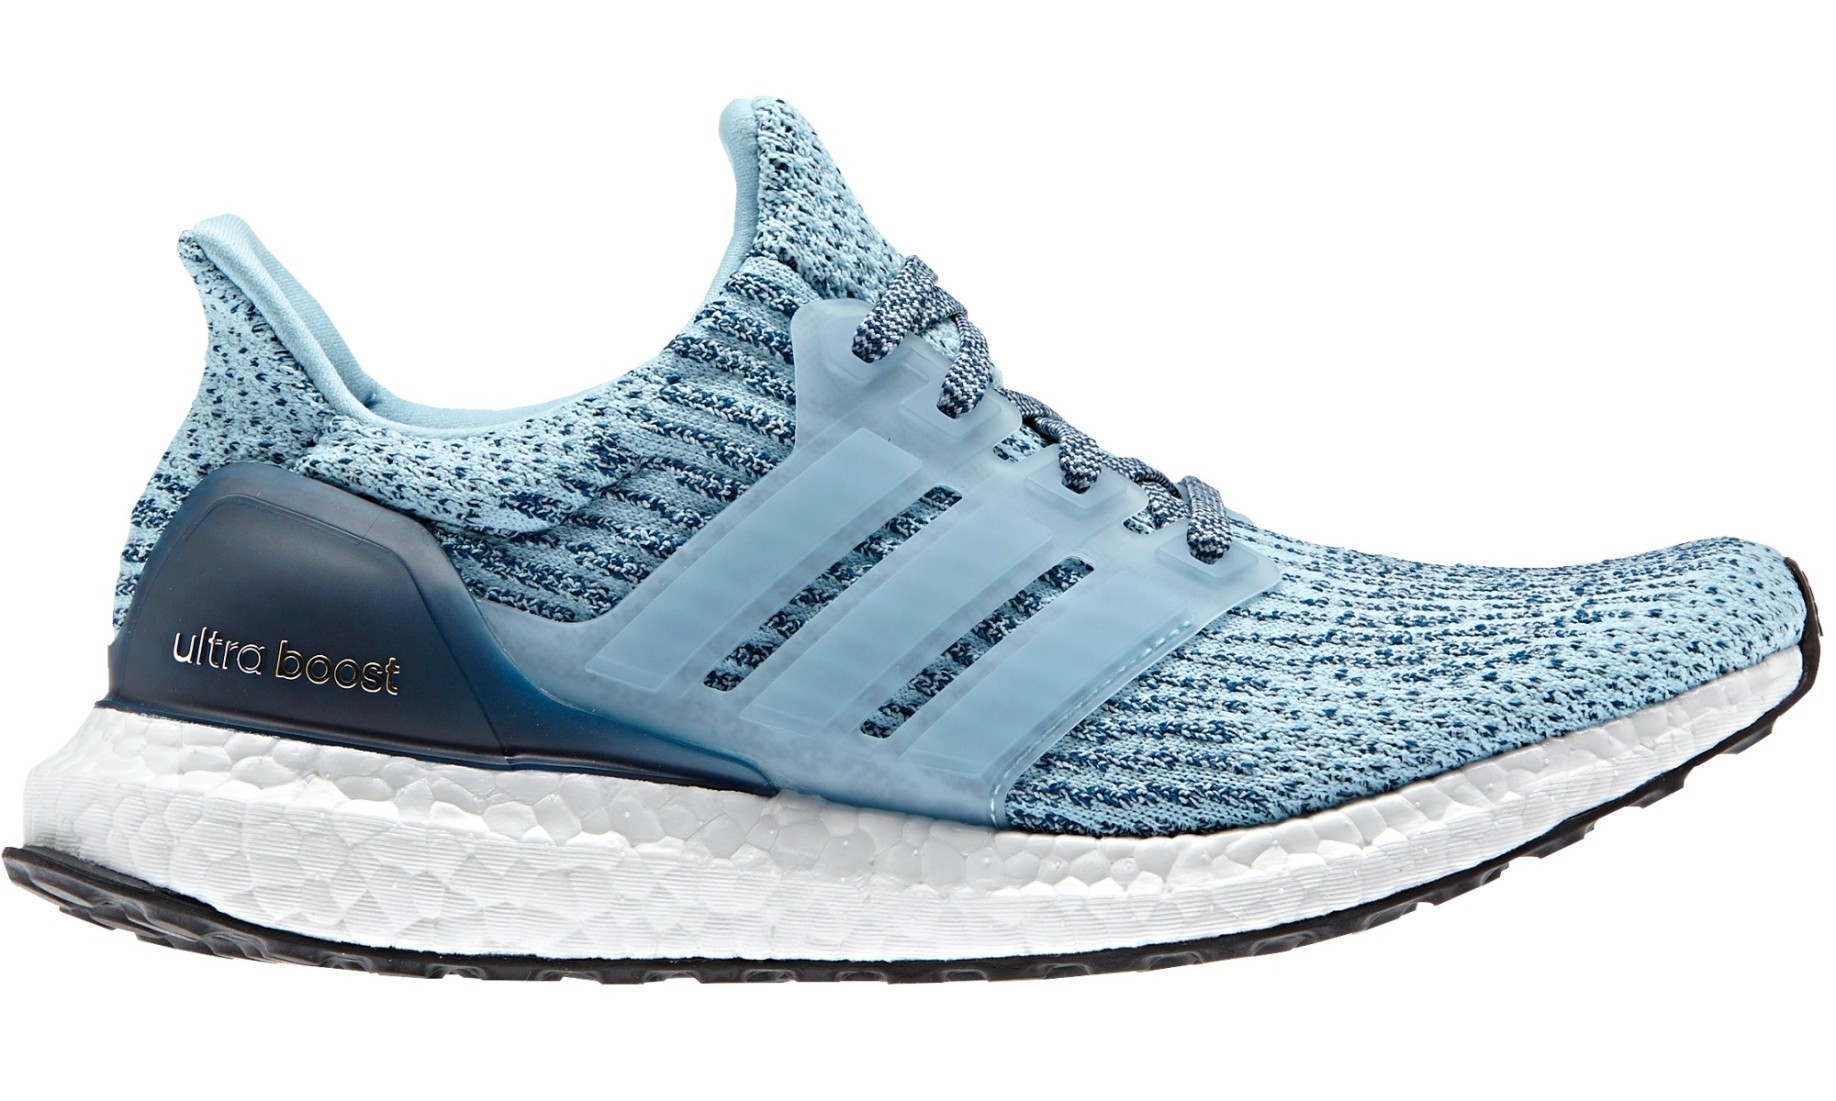 Shoes Woman Running UltraBoost A3 colore Light blue - Adidas - SportIT.com 1f67c3f414b